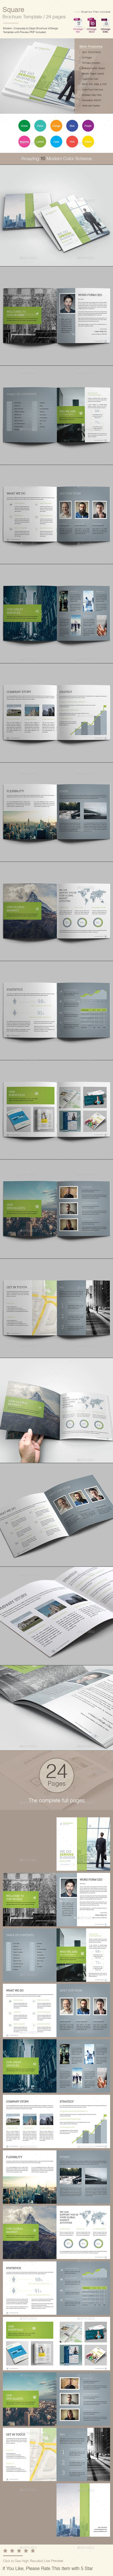 Square Brochure Template — InDesign INDD #business brochure #corporate brochure • Available here → https://graphicriver.net/item/square-brochure-template/15163359?ref=pxcr